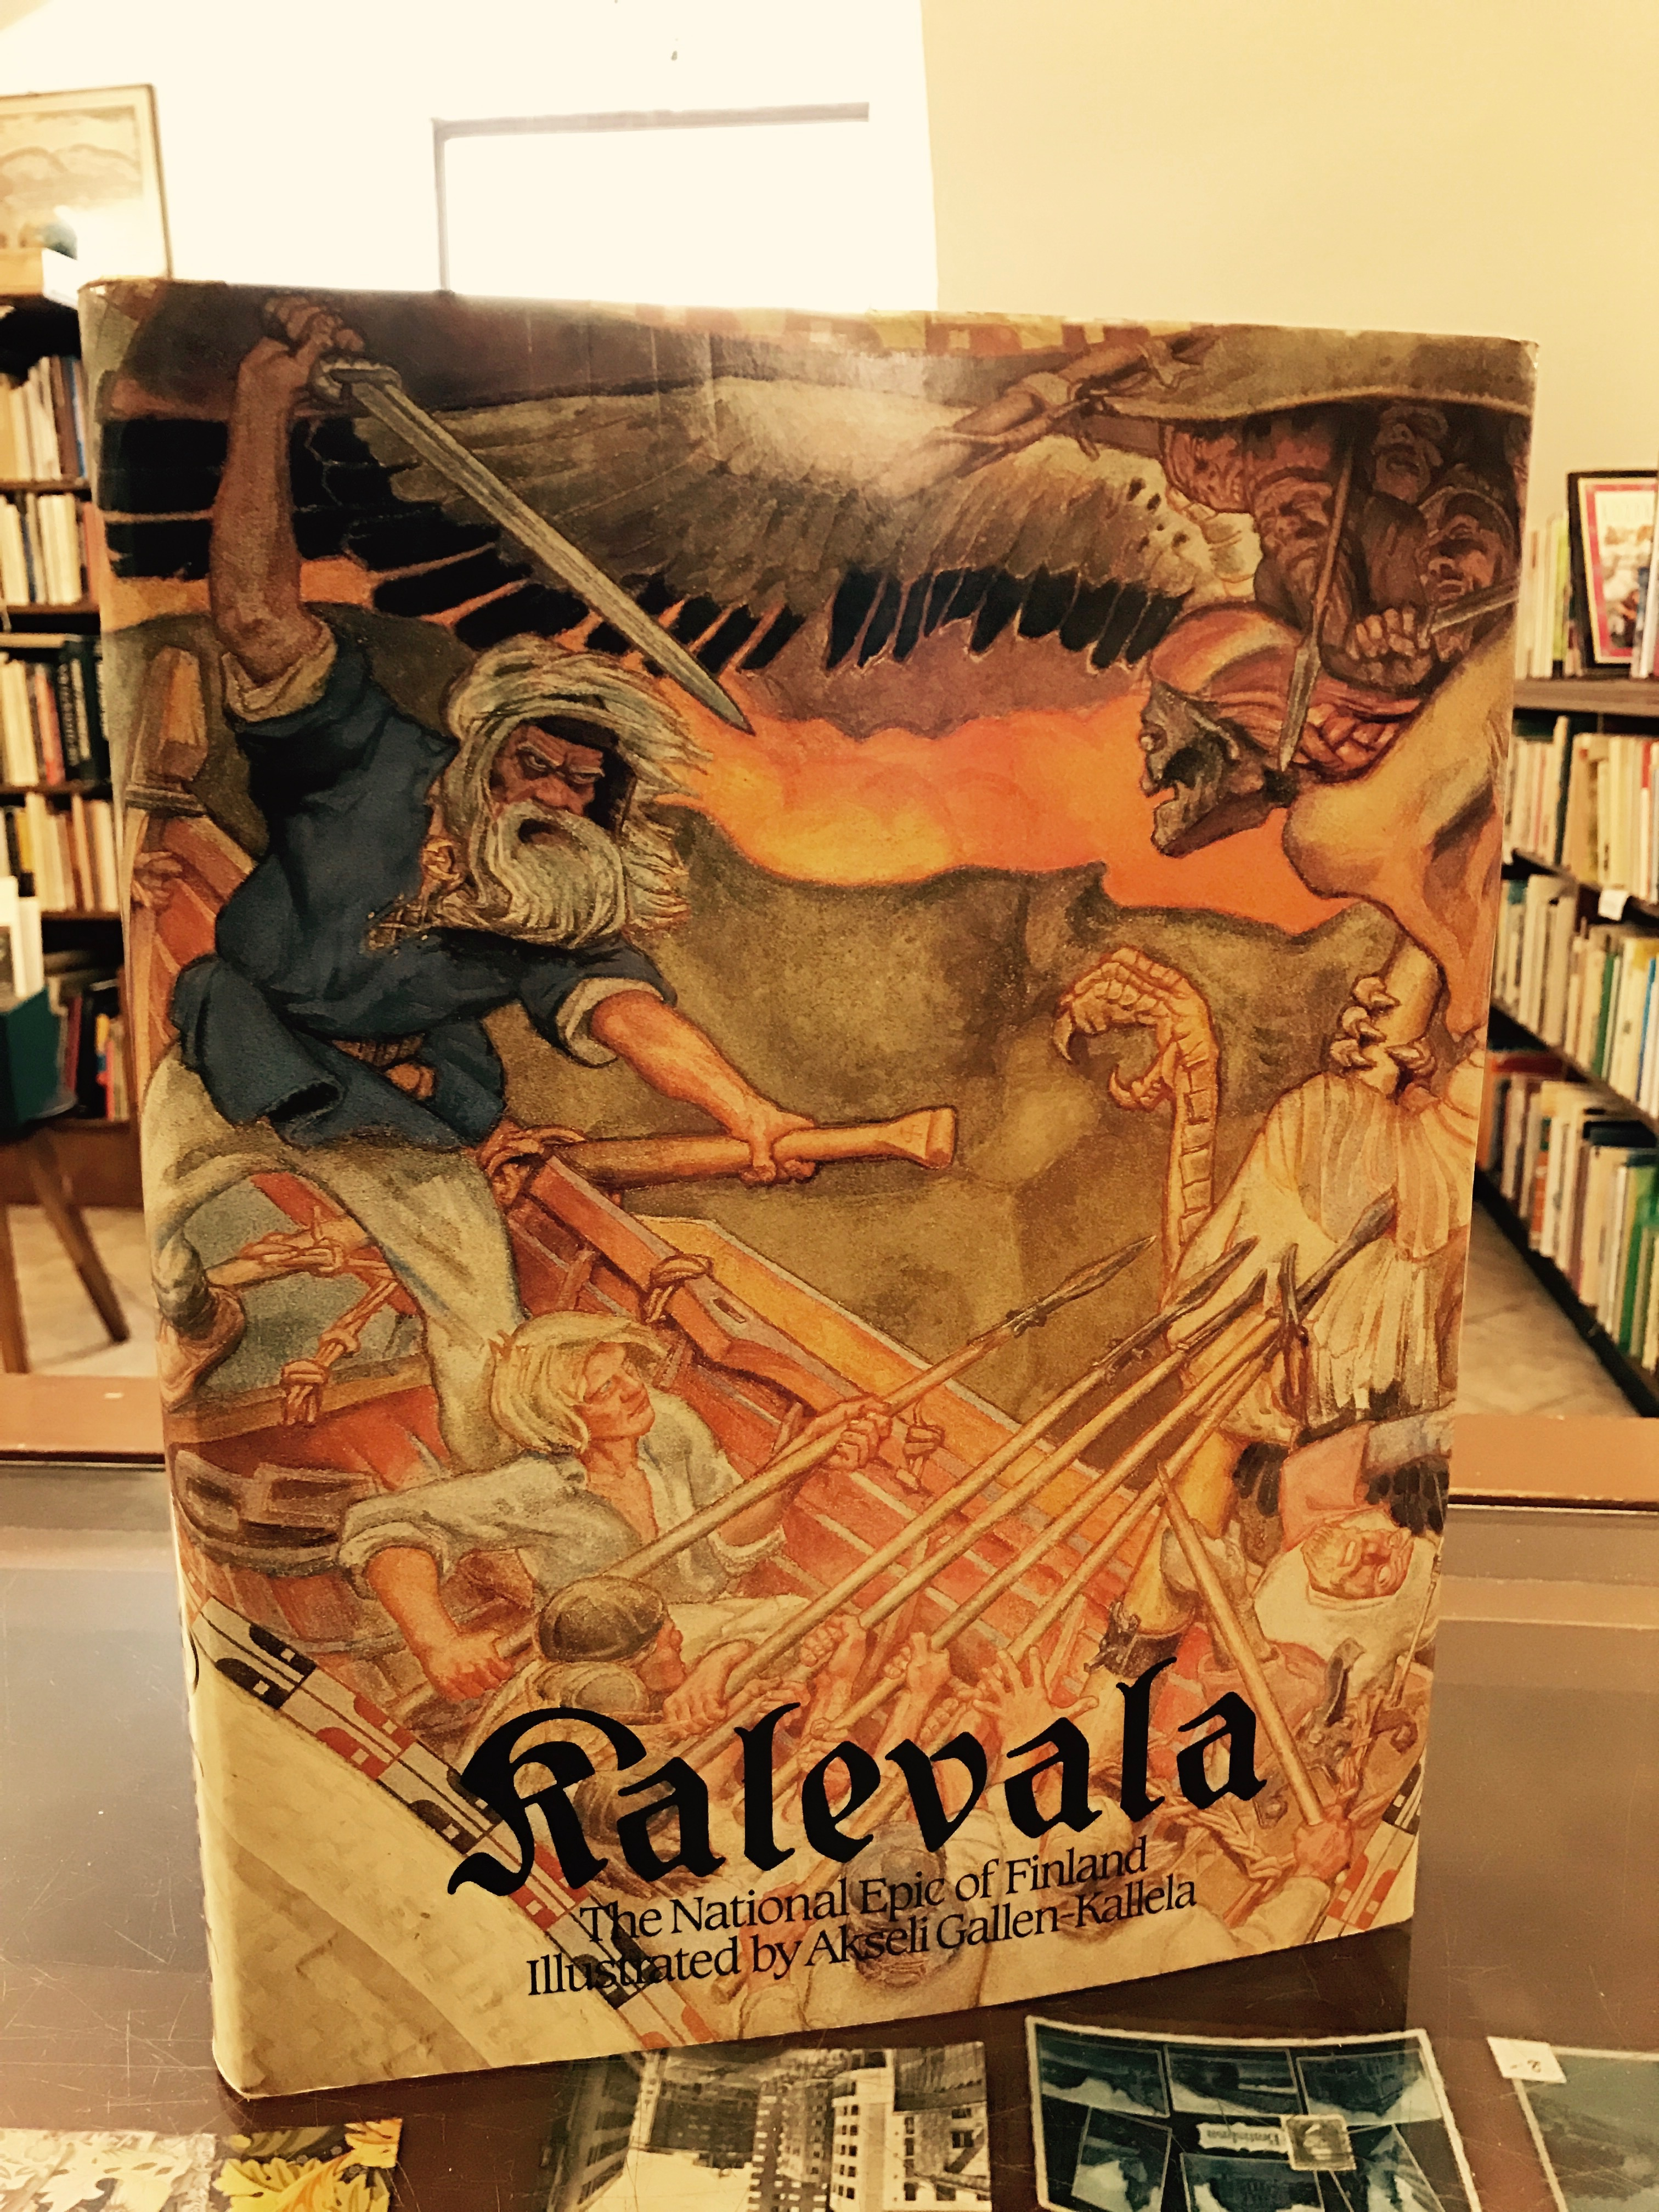 Kalevala. The National Epic of Finland